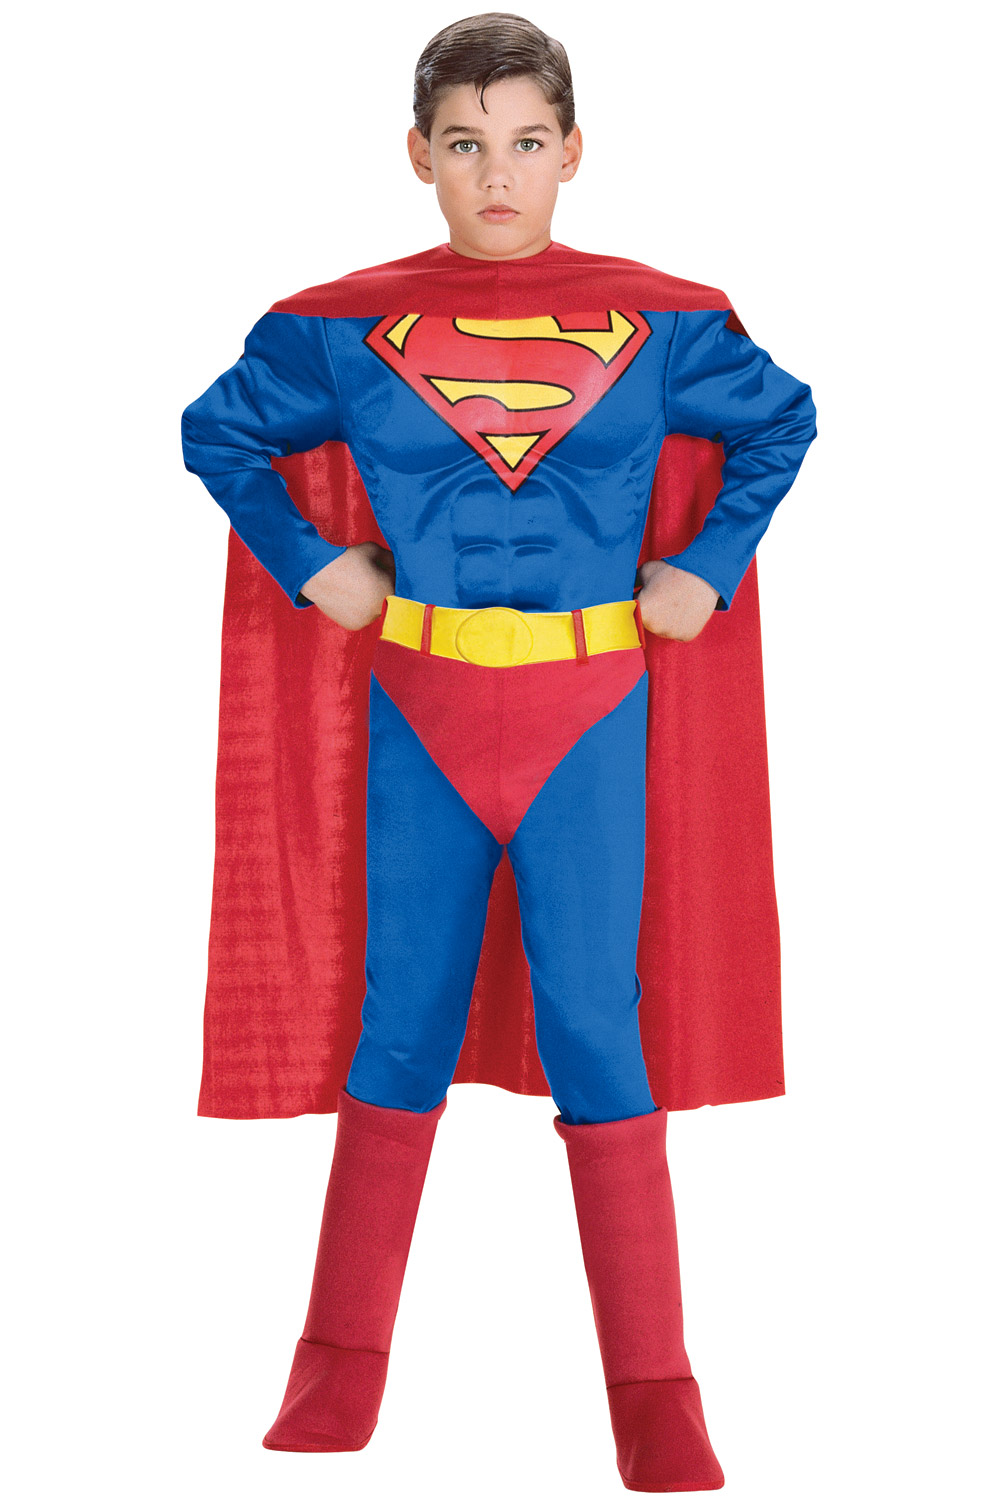 superman deluxe muscle chest superman toddler child costume. Black Bedroom Furniture Sets. Home Design Ideas